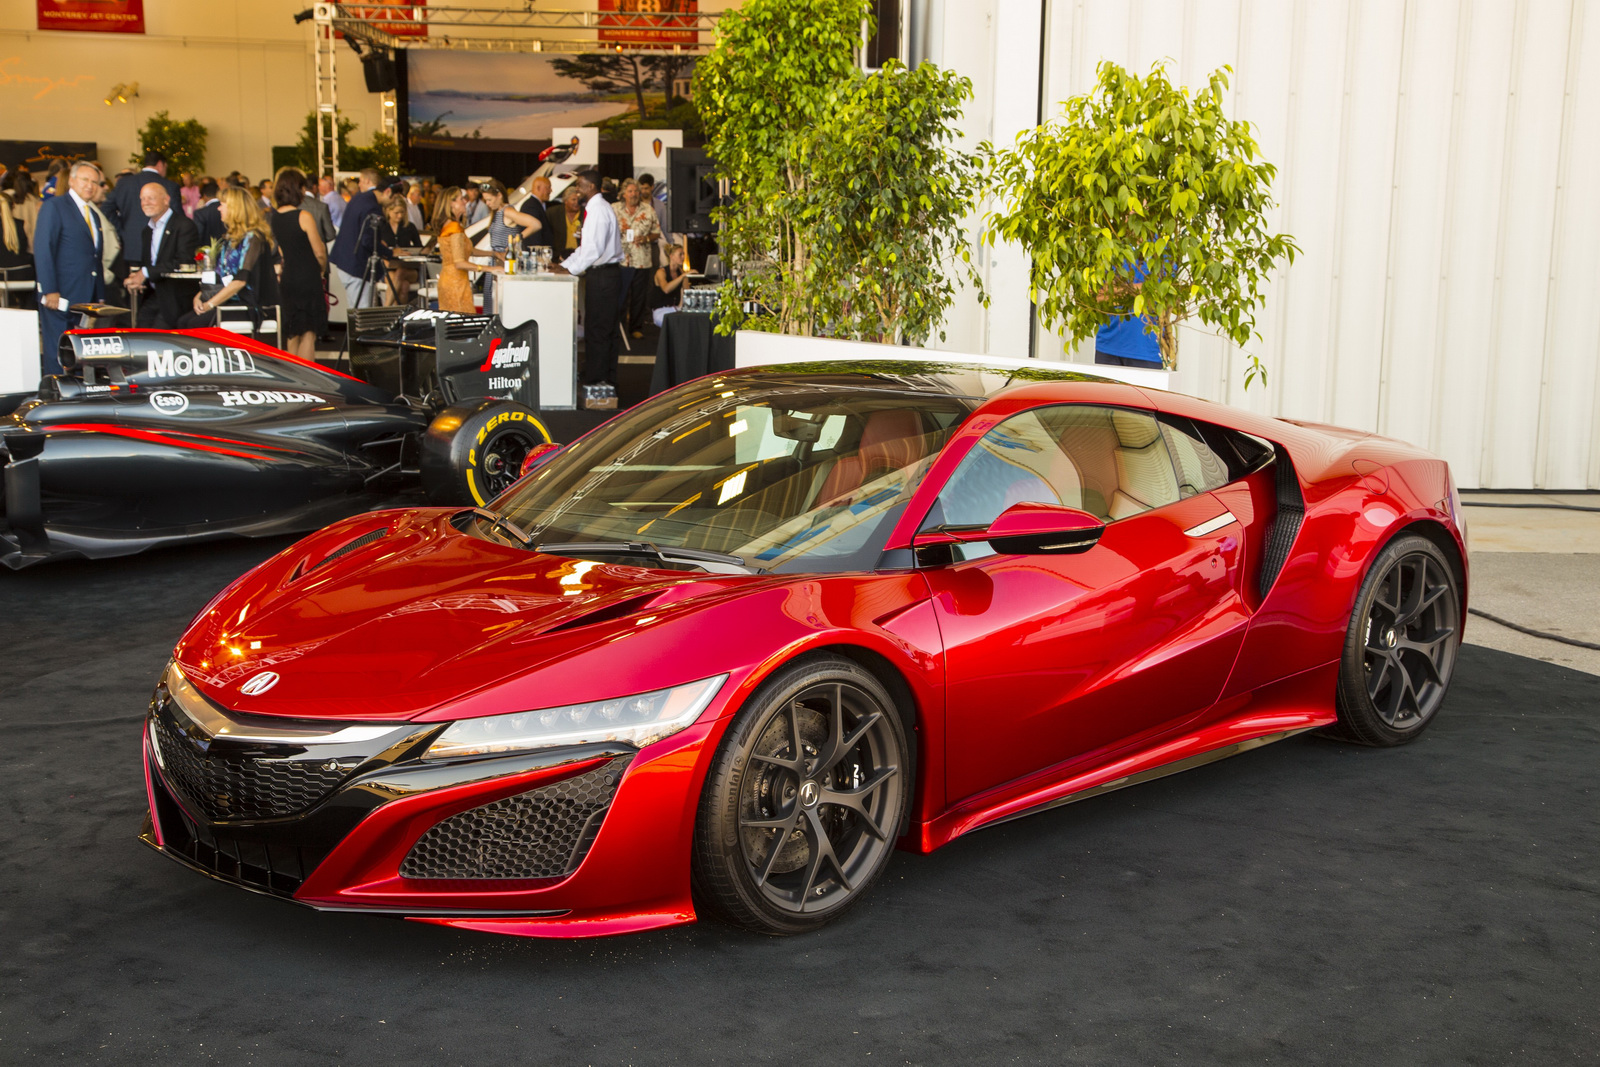 Acura's new NSX is shown at McCall's Motorworks on August 12, 2015 at the Monterey Jet Center in Monterey, Calif.